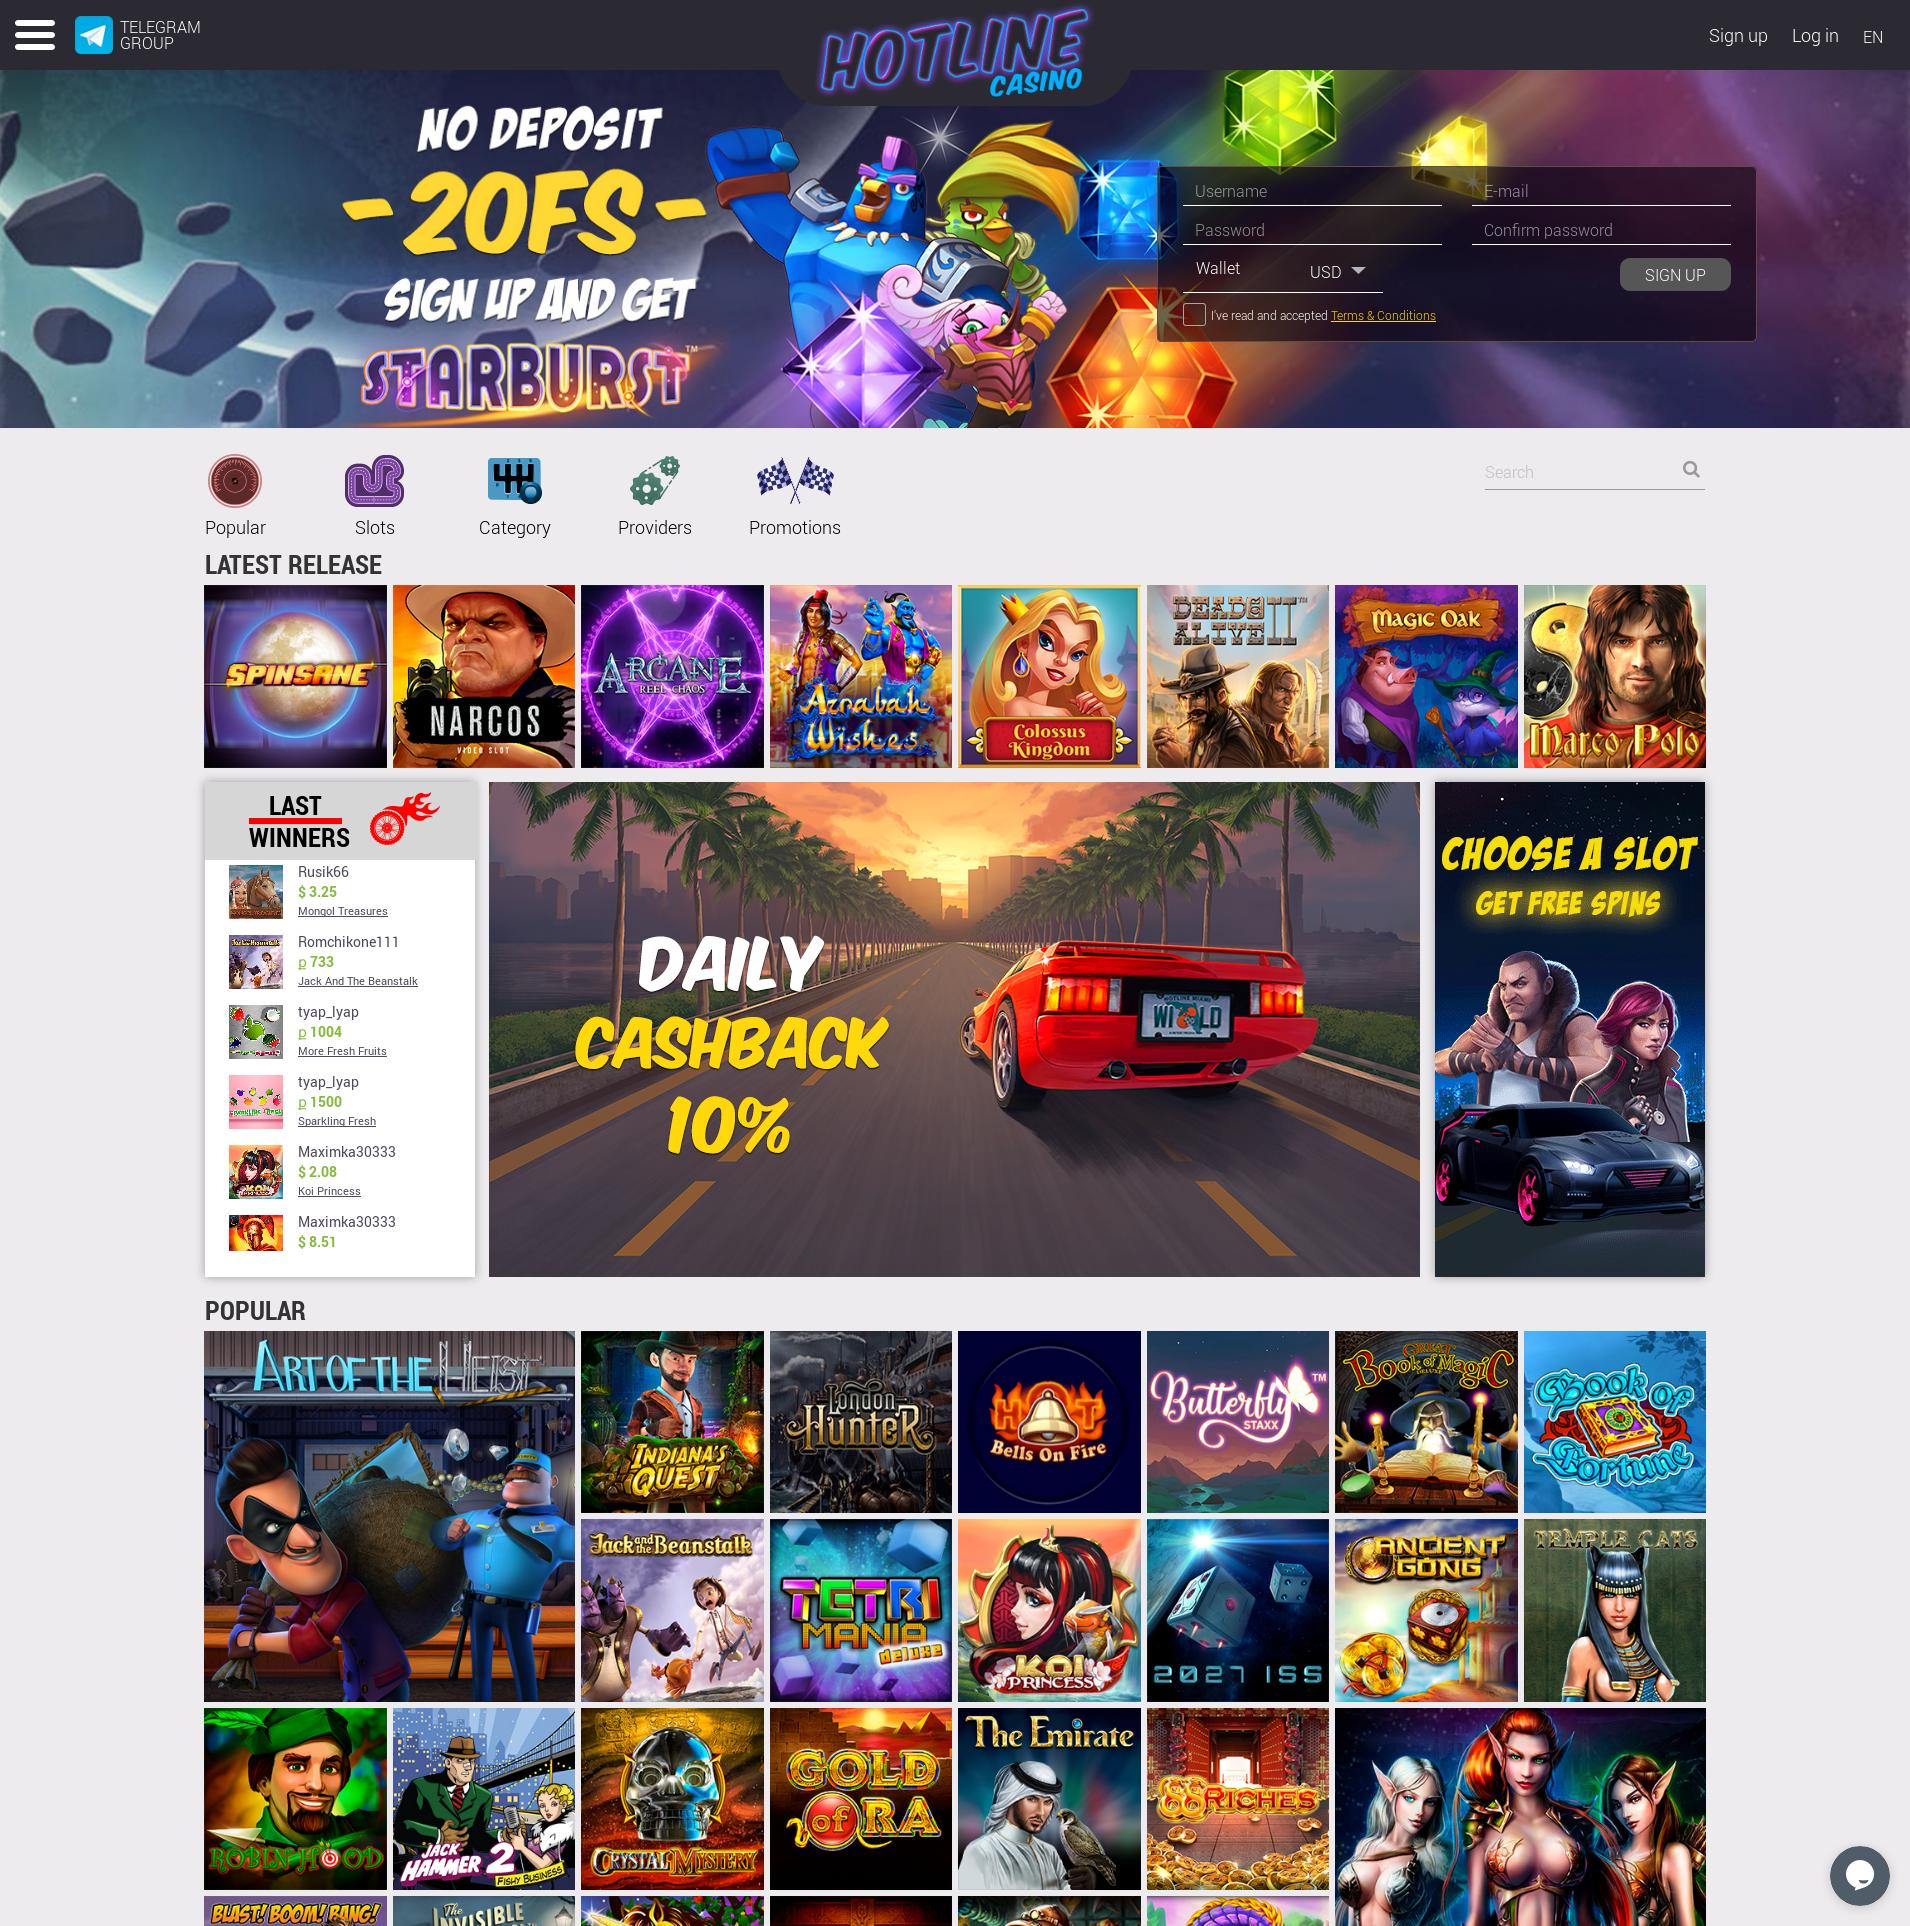 Casino screen Lobby 2019-06-26 for Russian Federation